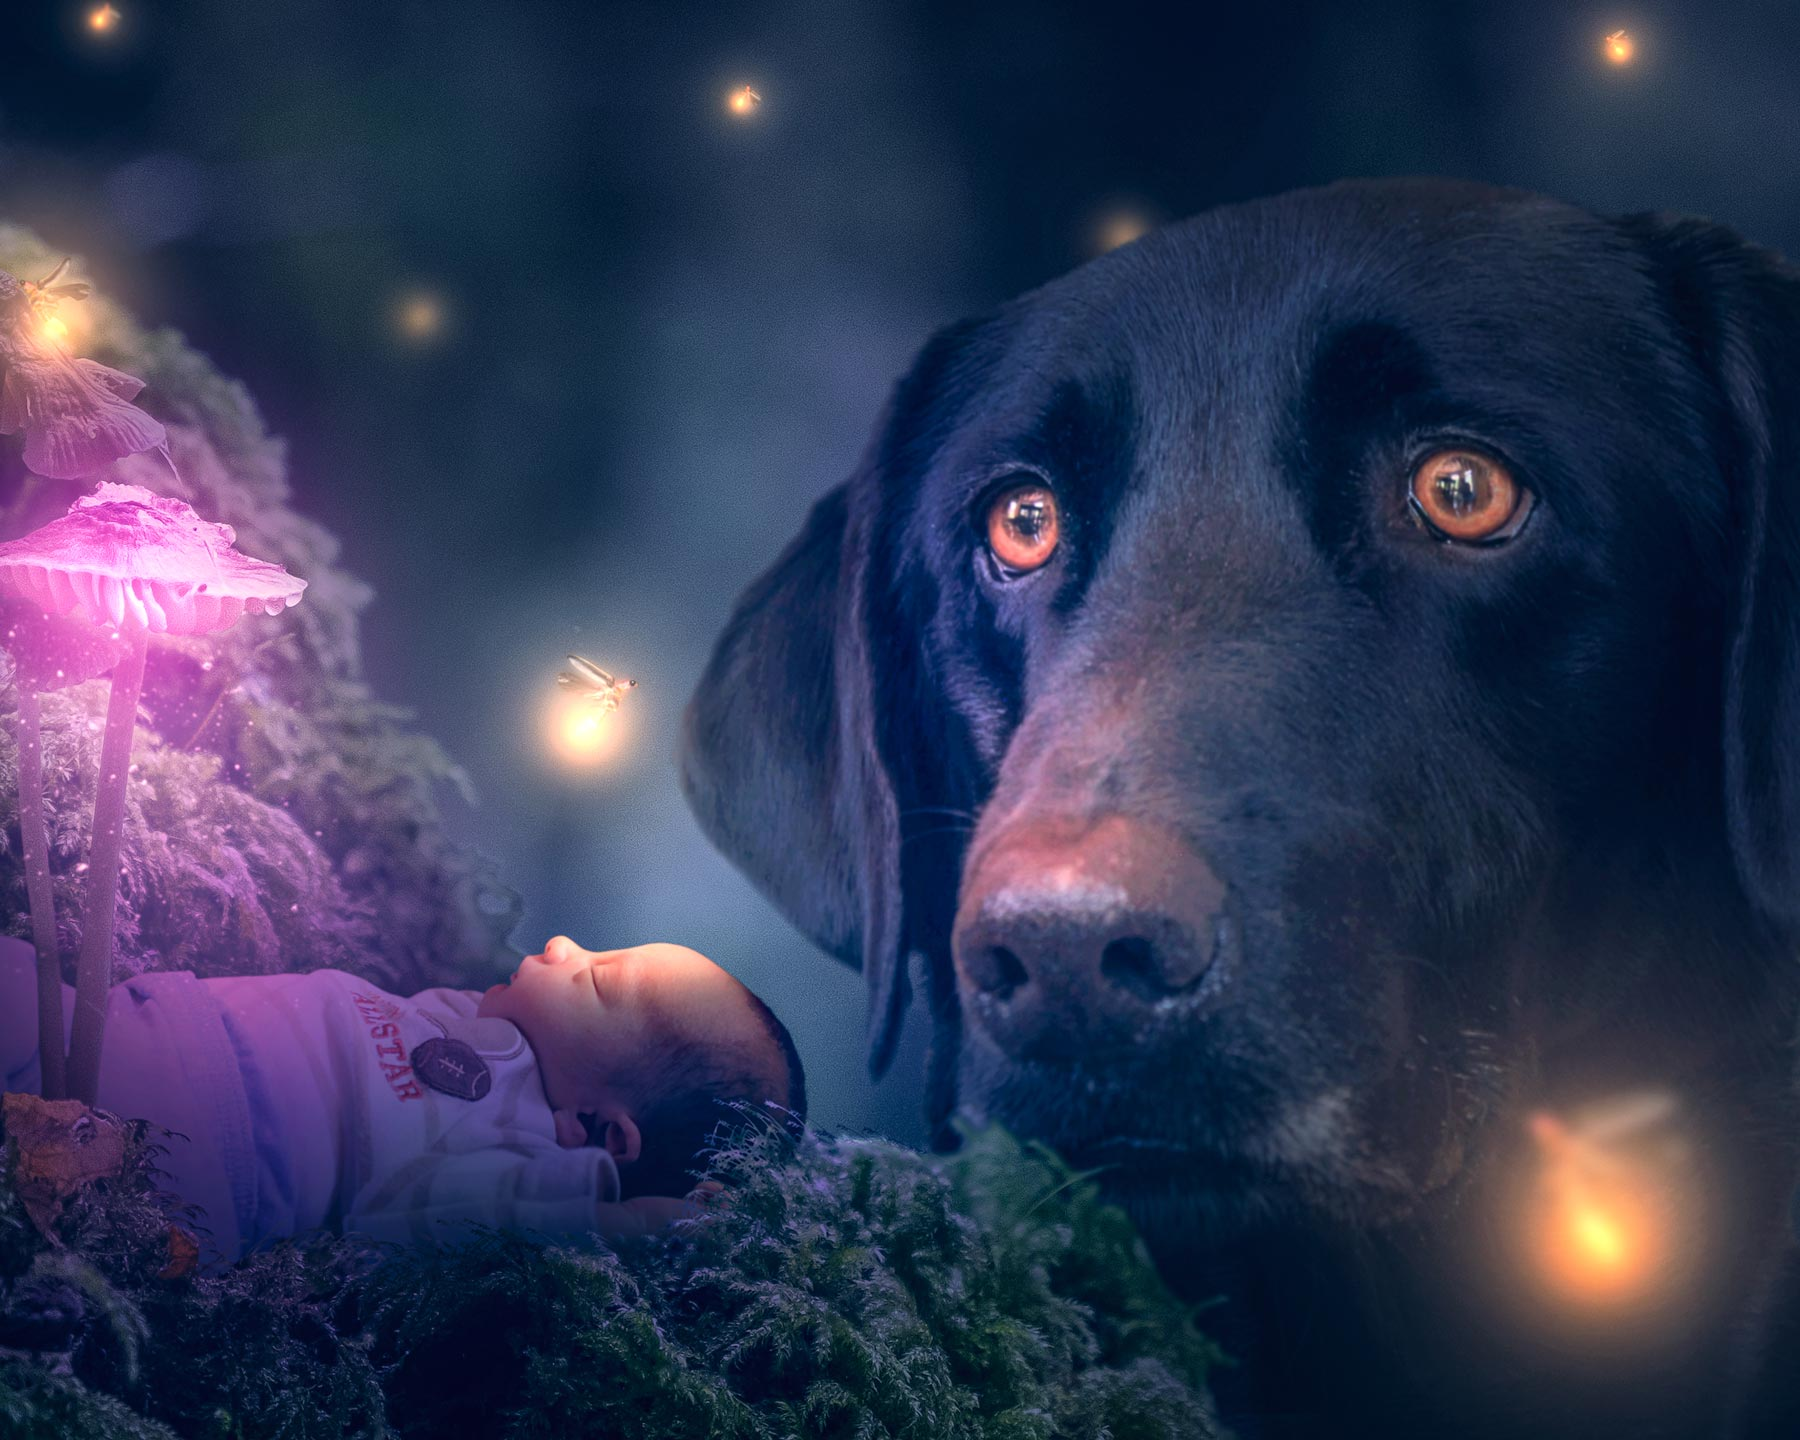 A newborn baby sleeps soundly in a magical forest as a faithful and loving dog stands guard. Lightning the scene with serene beauty and peace are a forest full of lightning bugs.